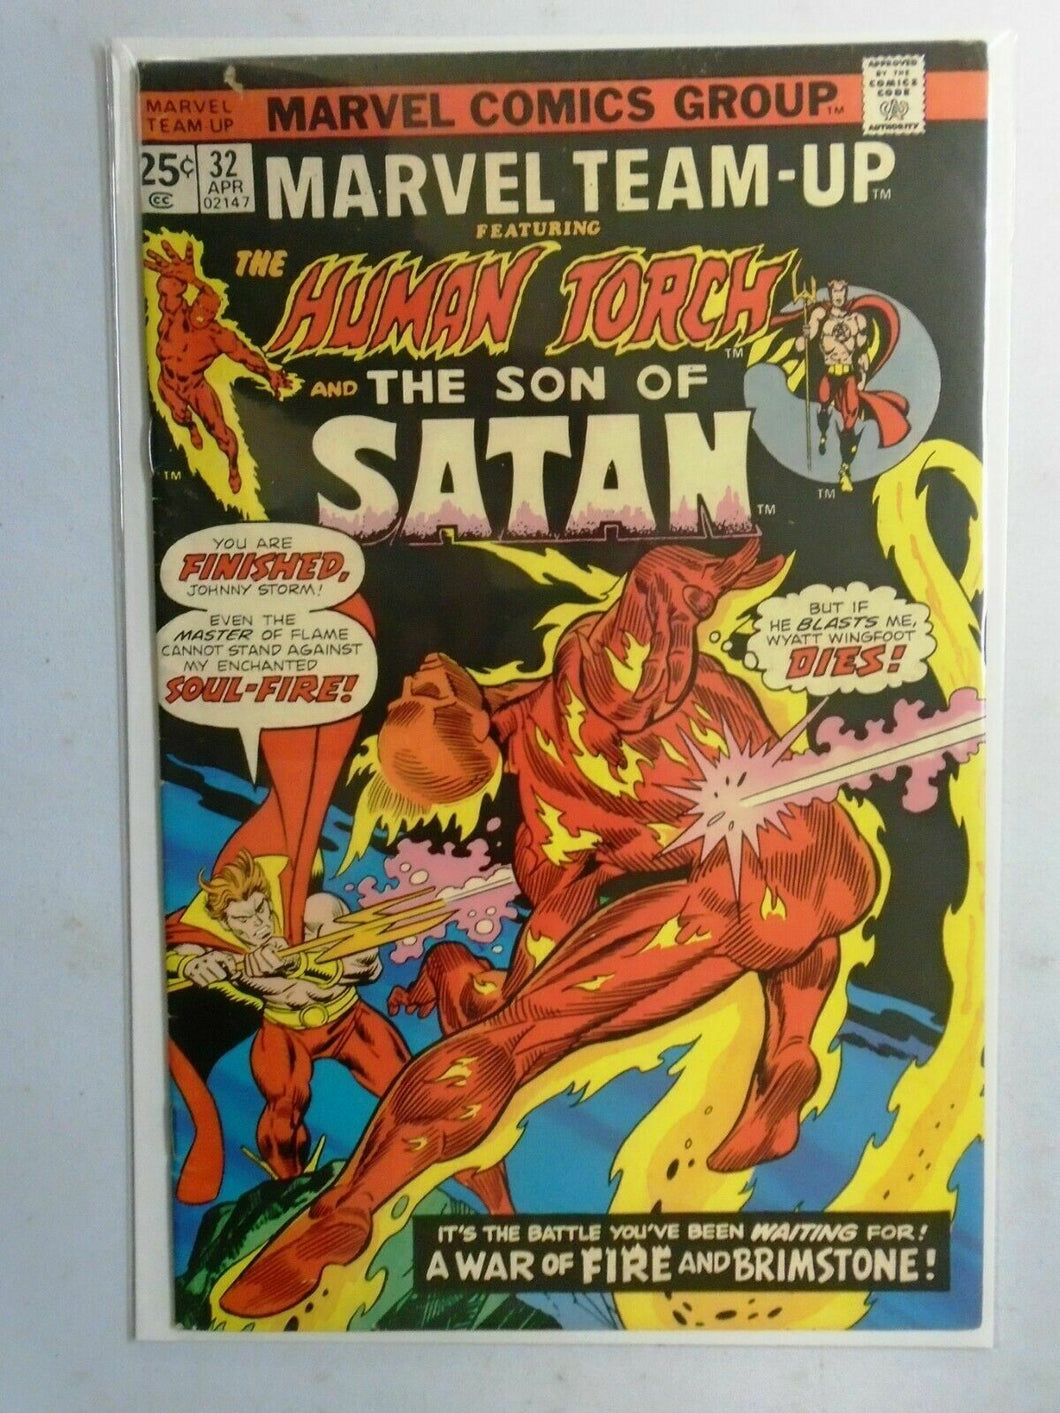 Marvel Team-Up (1st Series) #32, 4.0 (1975)